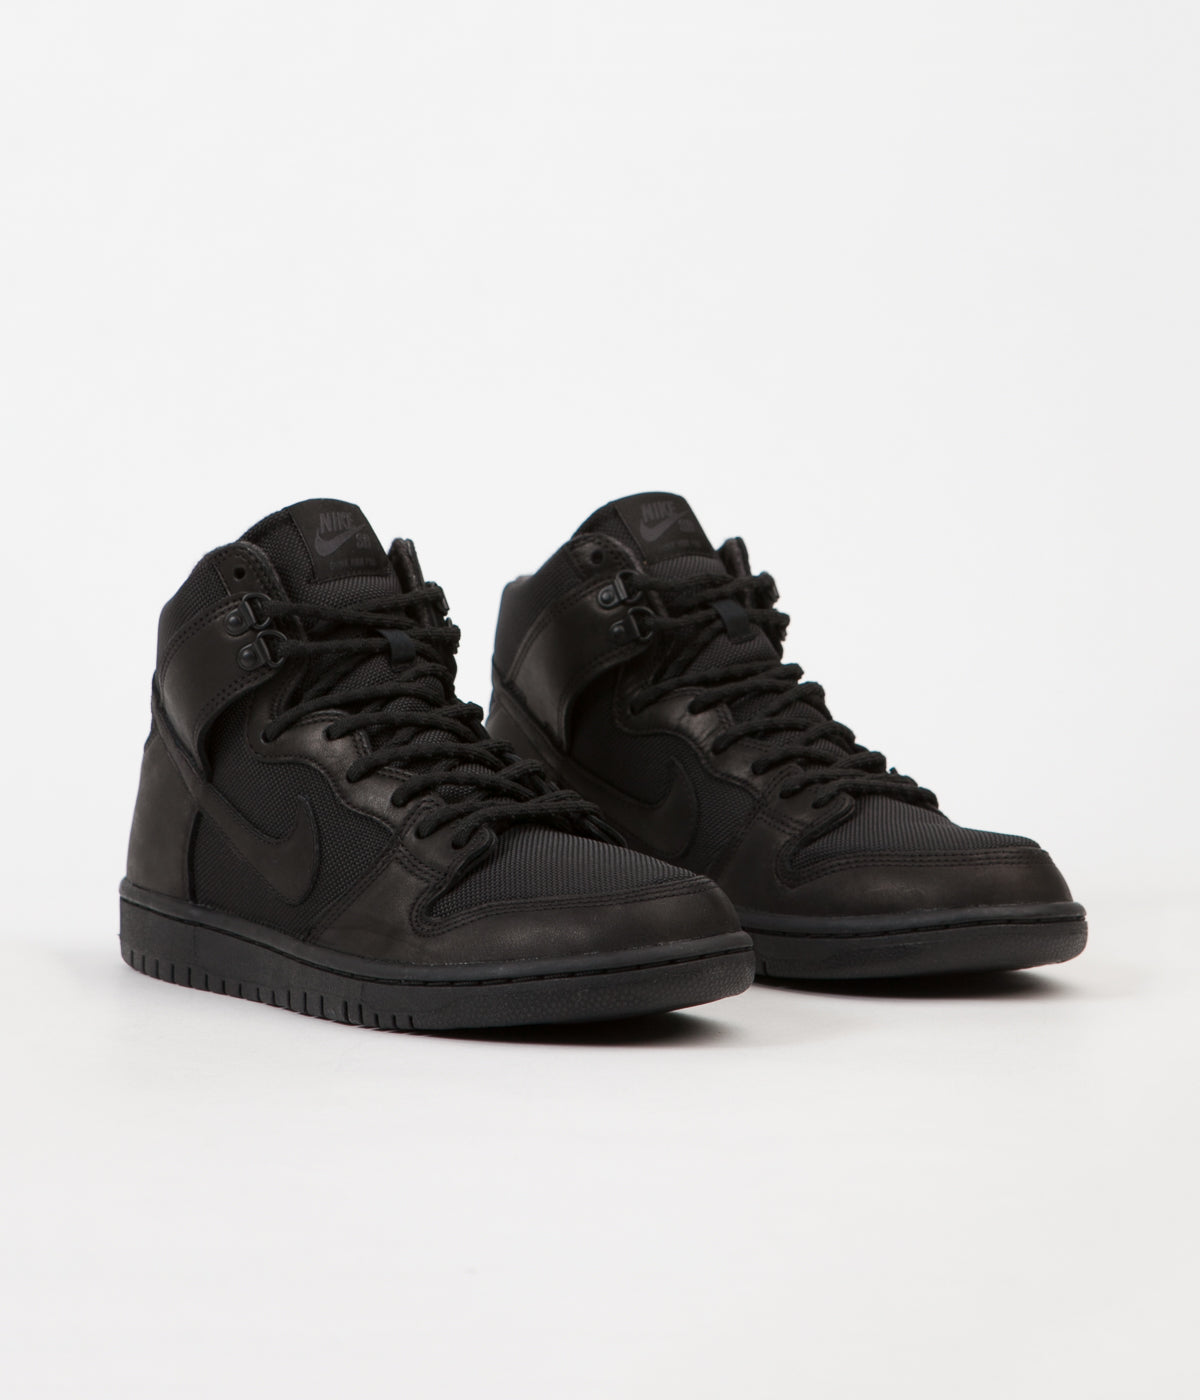 nike sb dunk high pro bota shoes black black. Black Bedroom Furniture Sets. Home Design Ideas